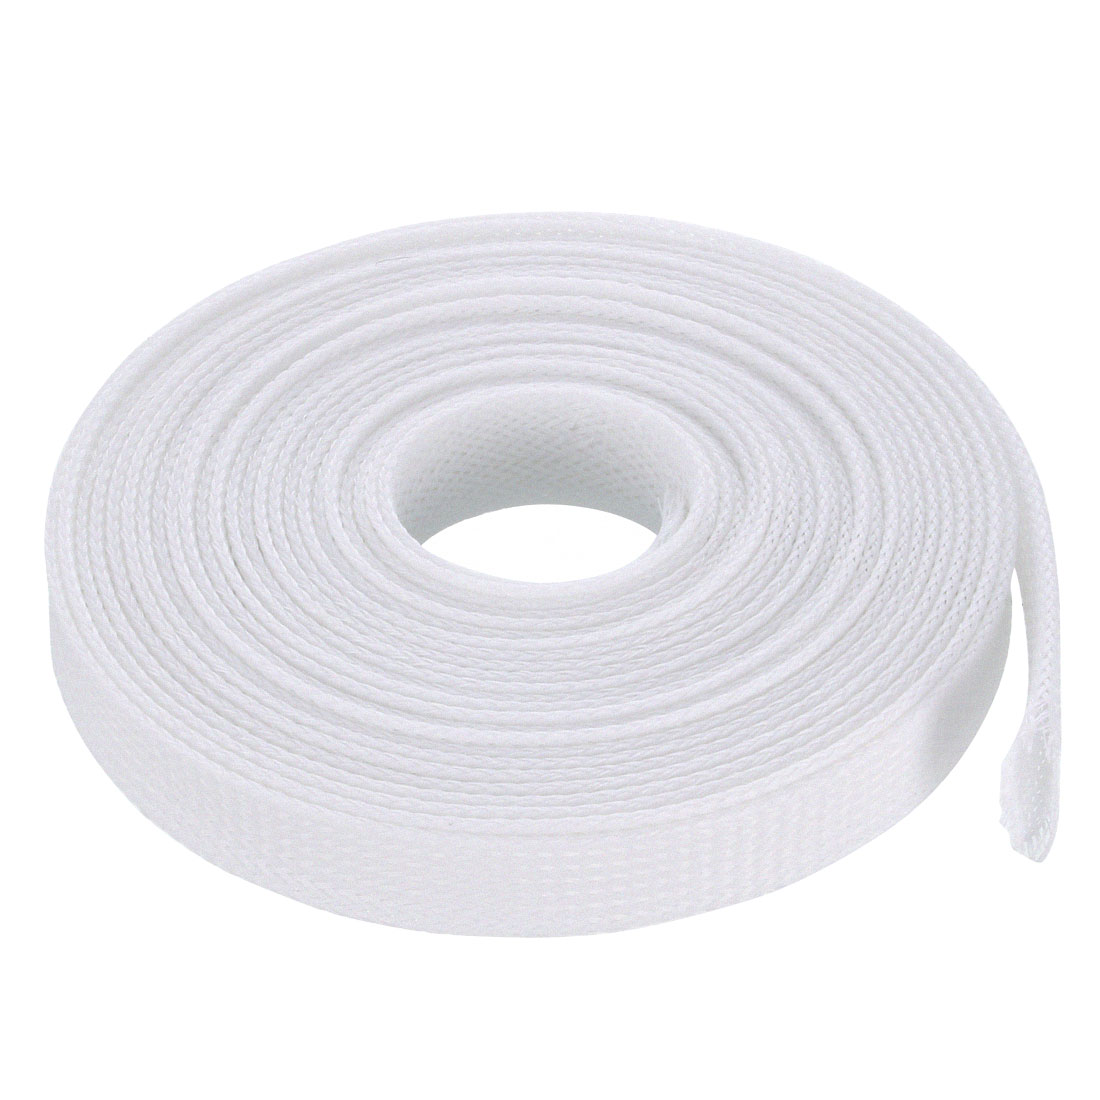 16mm Flat Dia Tight PET Expandable Sleeving Cable Wrap Sheath White 5M